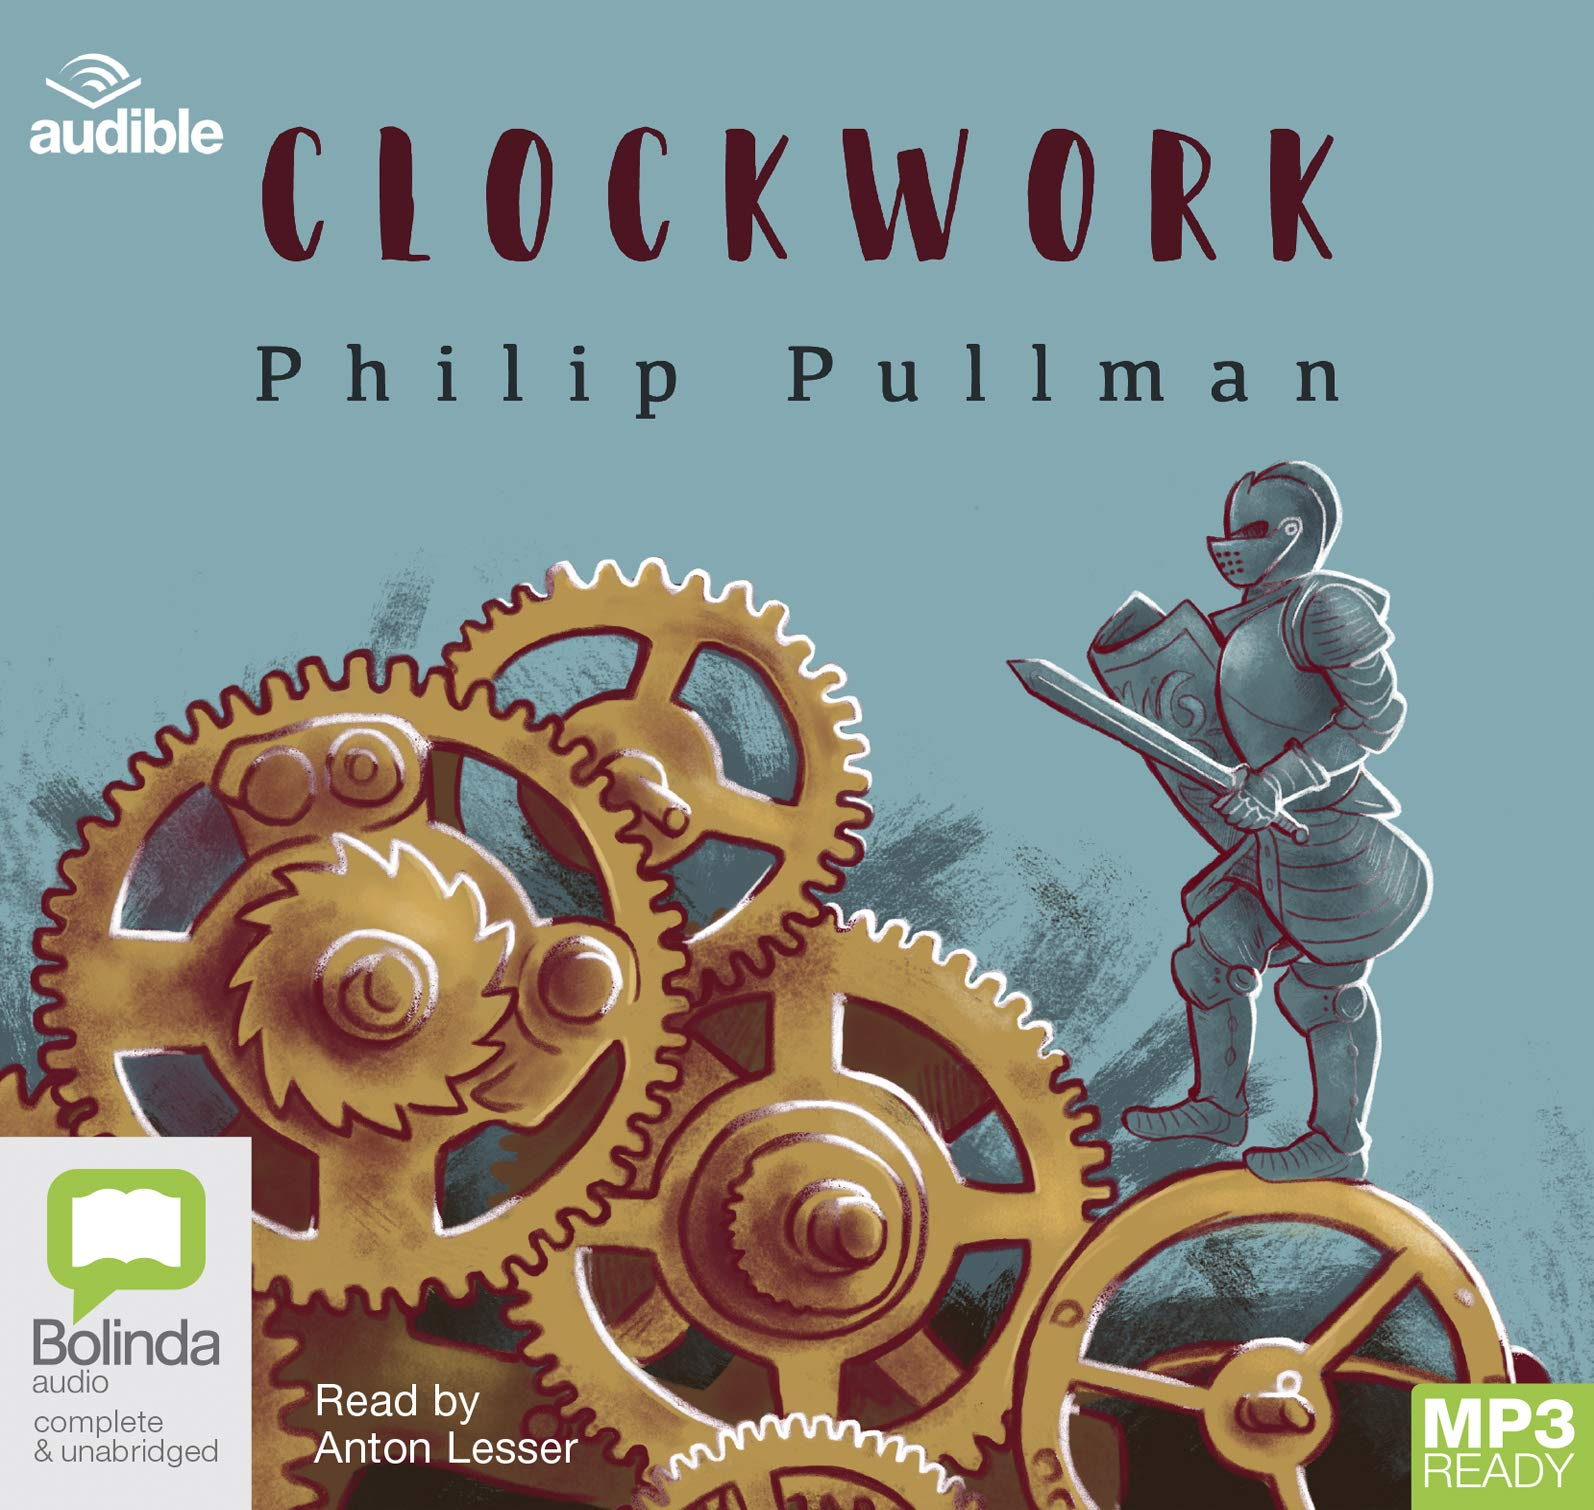 Clockwork (audiobook)